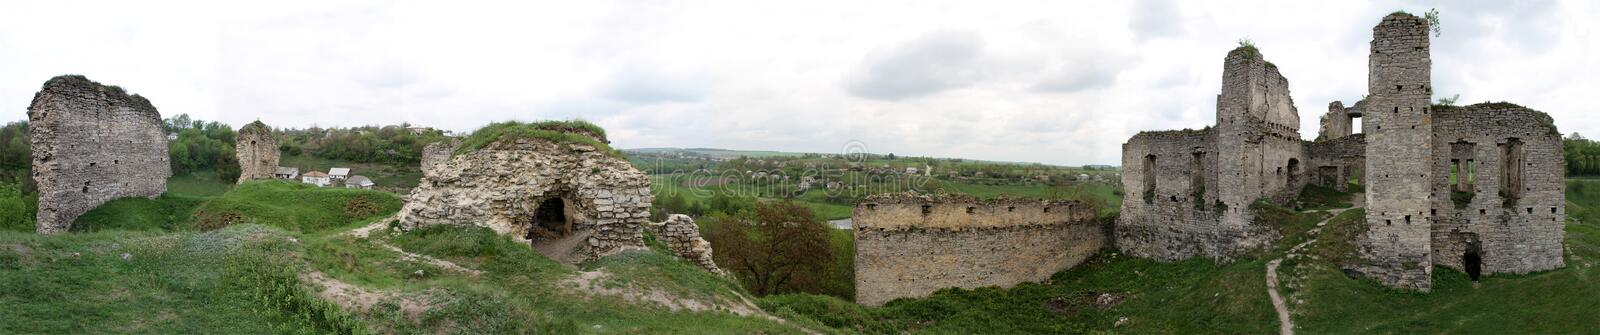 Download Panorama of Castle ruins stock image. Image of fallen - 31061349